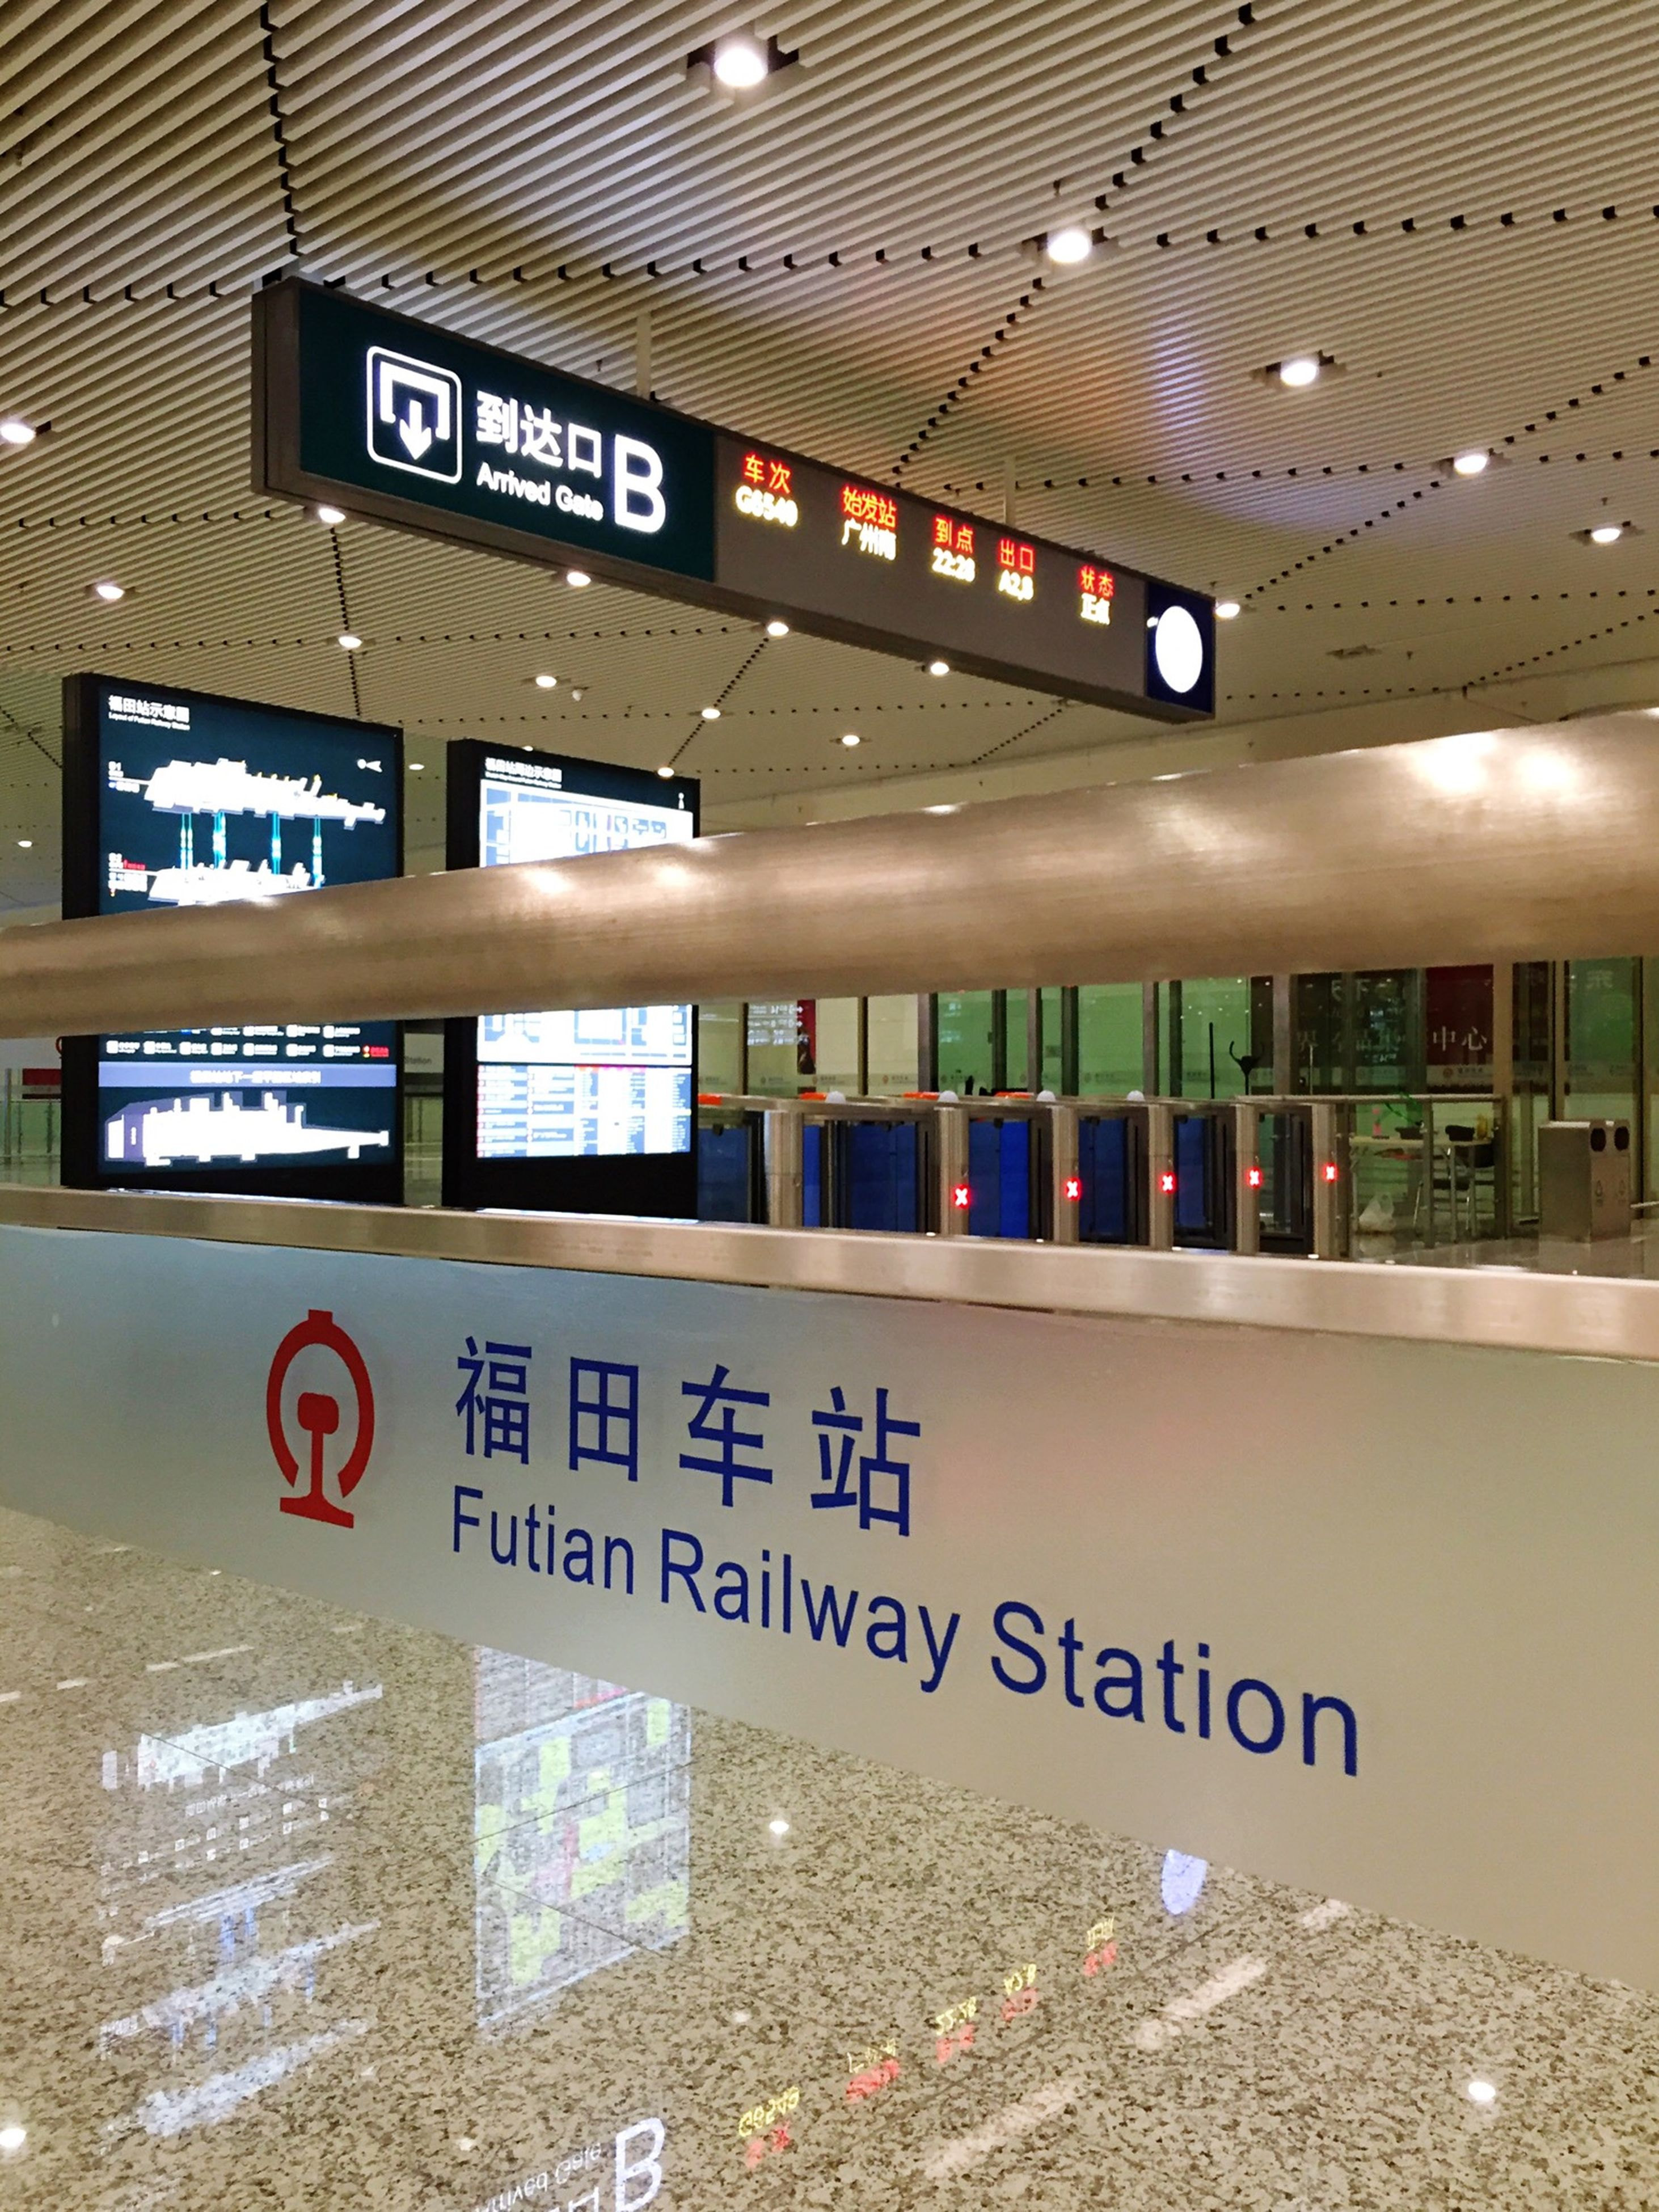 text, western script, communication, indoors, transportation, public transportation, information sign, railroad station, number, non-western script, rail transportation, train - vehicle, capital letter, travel, information, subway station, guidance, mode of transport, sign, railroad station platform